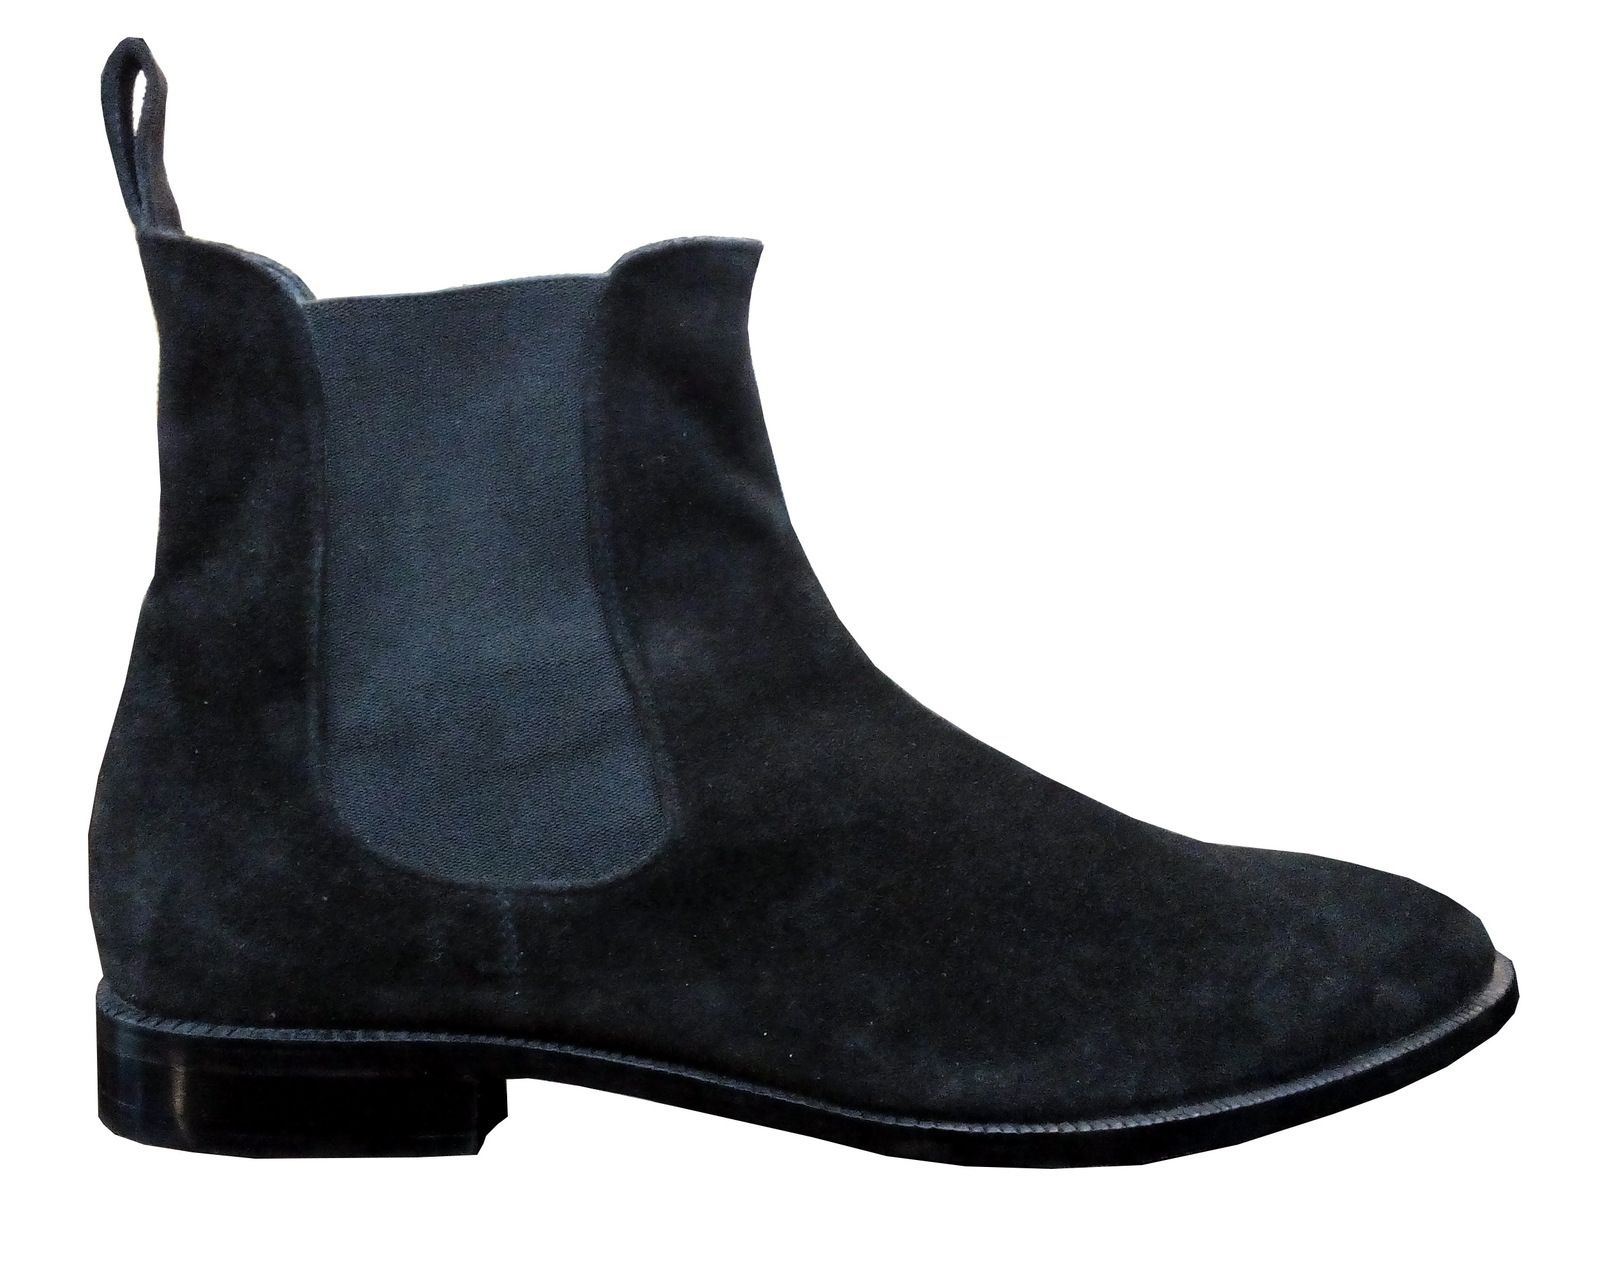 30a9f064e6b Handmade Men's Navy Blue Color Chelsea Boot, Men's Suede High Ankle ...